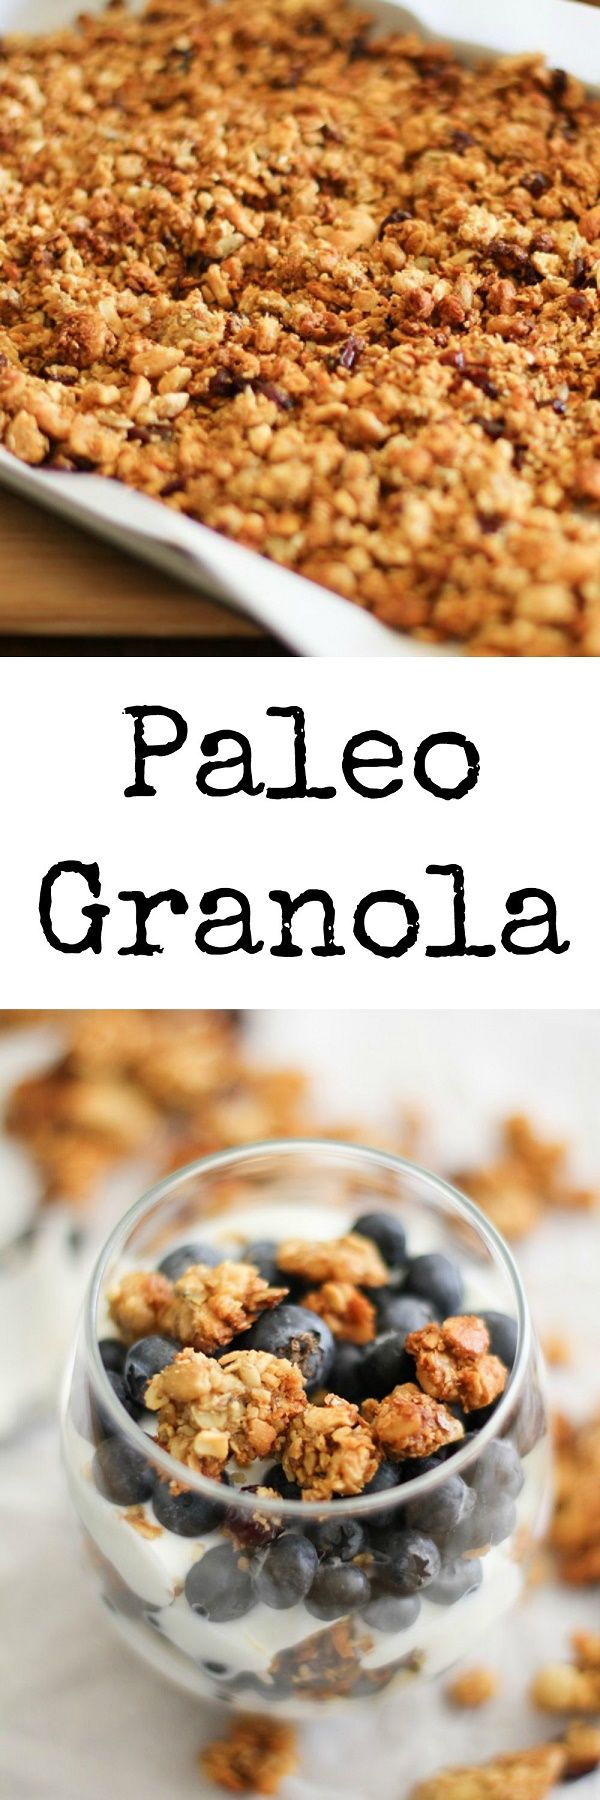 Paleo Granola - grain-free, made with nuts and seeds. Naturally sweetened and protein-packed